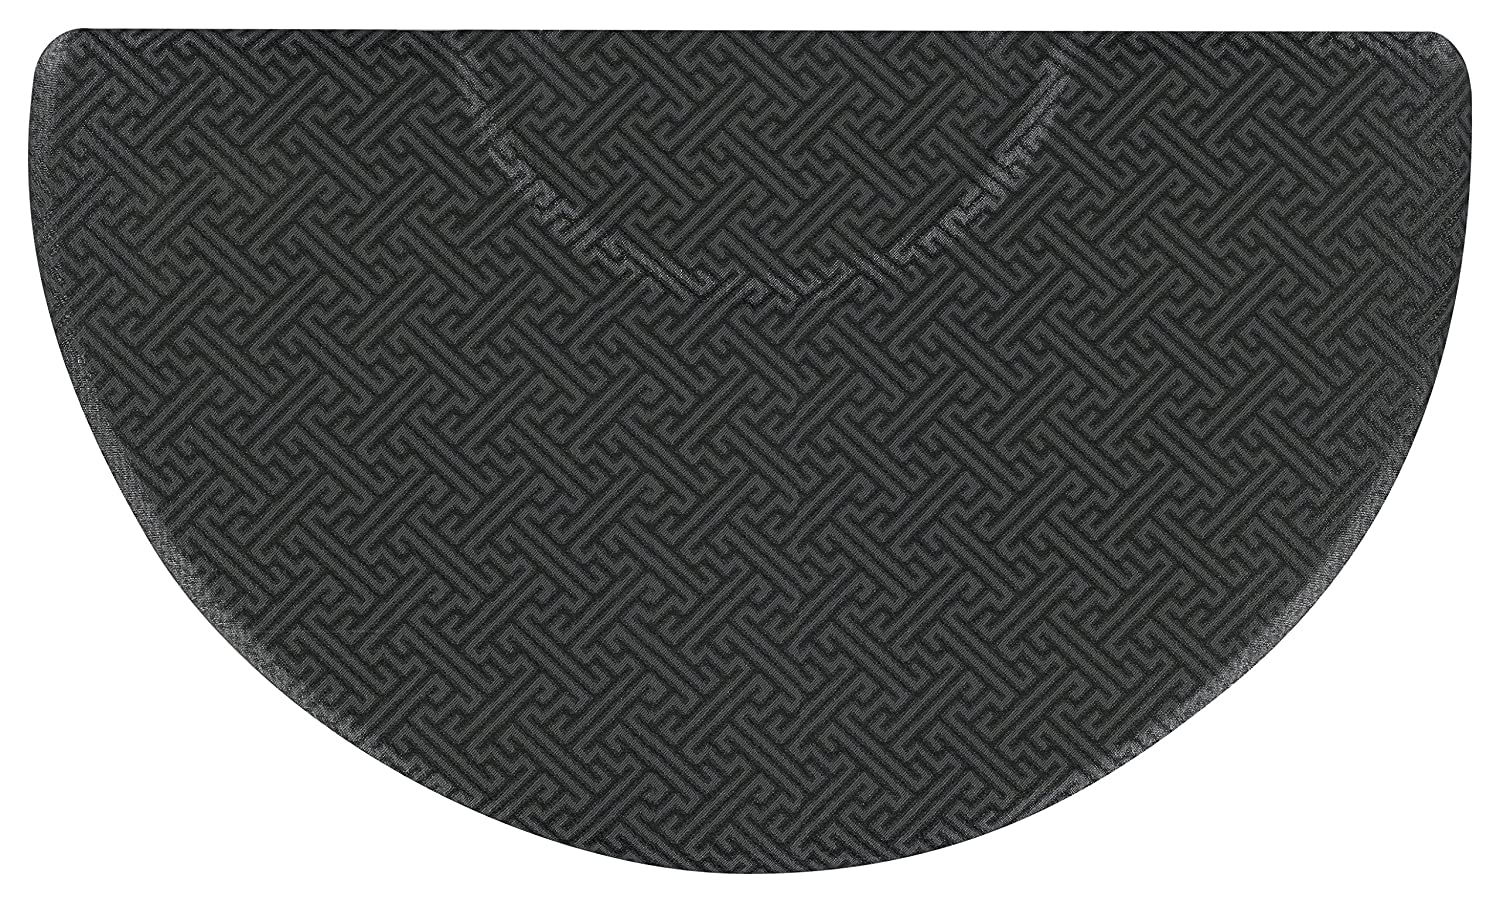 Andersen 591013459 Salon Dcor 591 Anti-Fatigue Mat in Greek Key Design, 34 x 59, 3/4 Thickness, Black/Grey Color Scheme by Andersen B01D65I5GQ